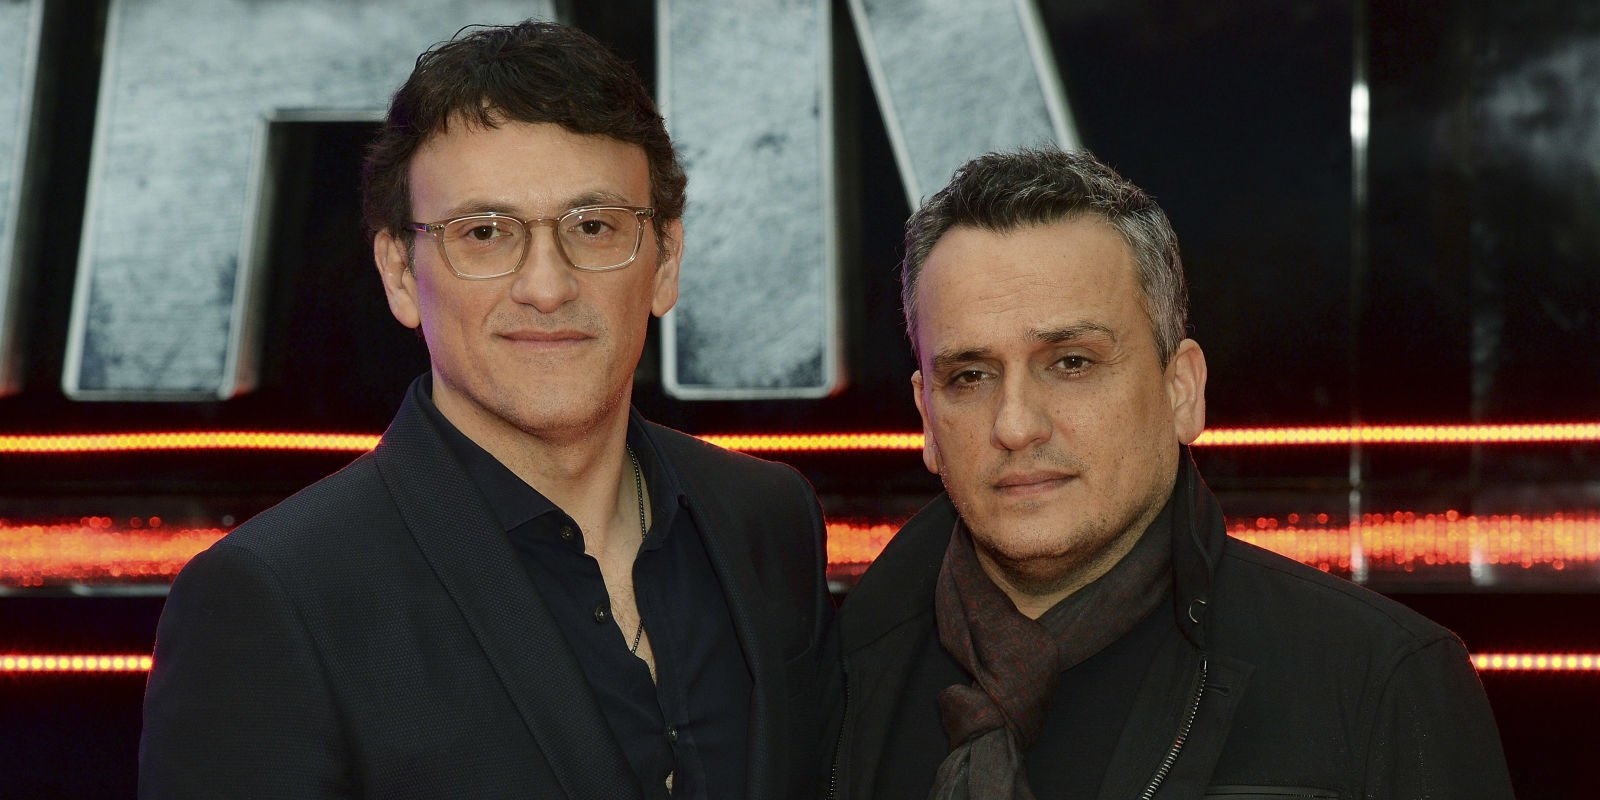 Avengers 4 will be the Russo brothers' longest movie yet